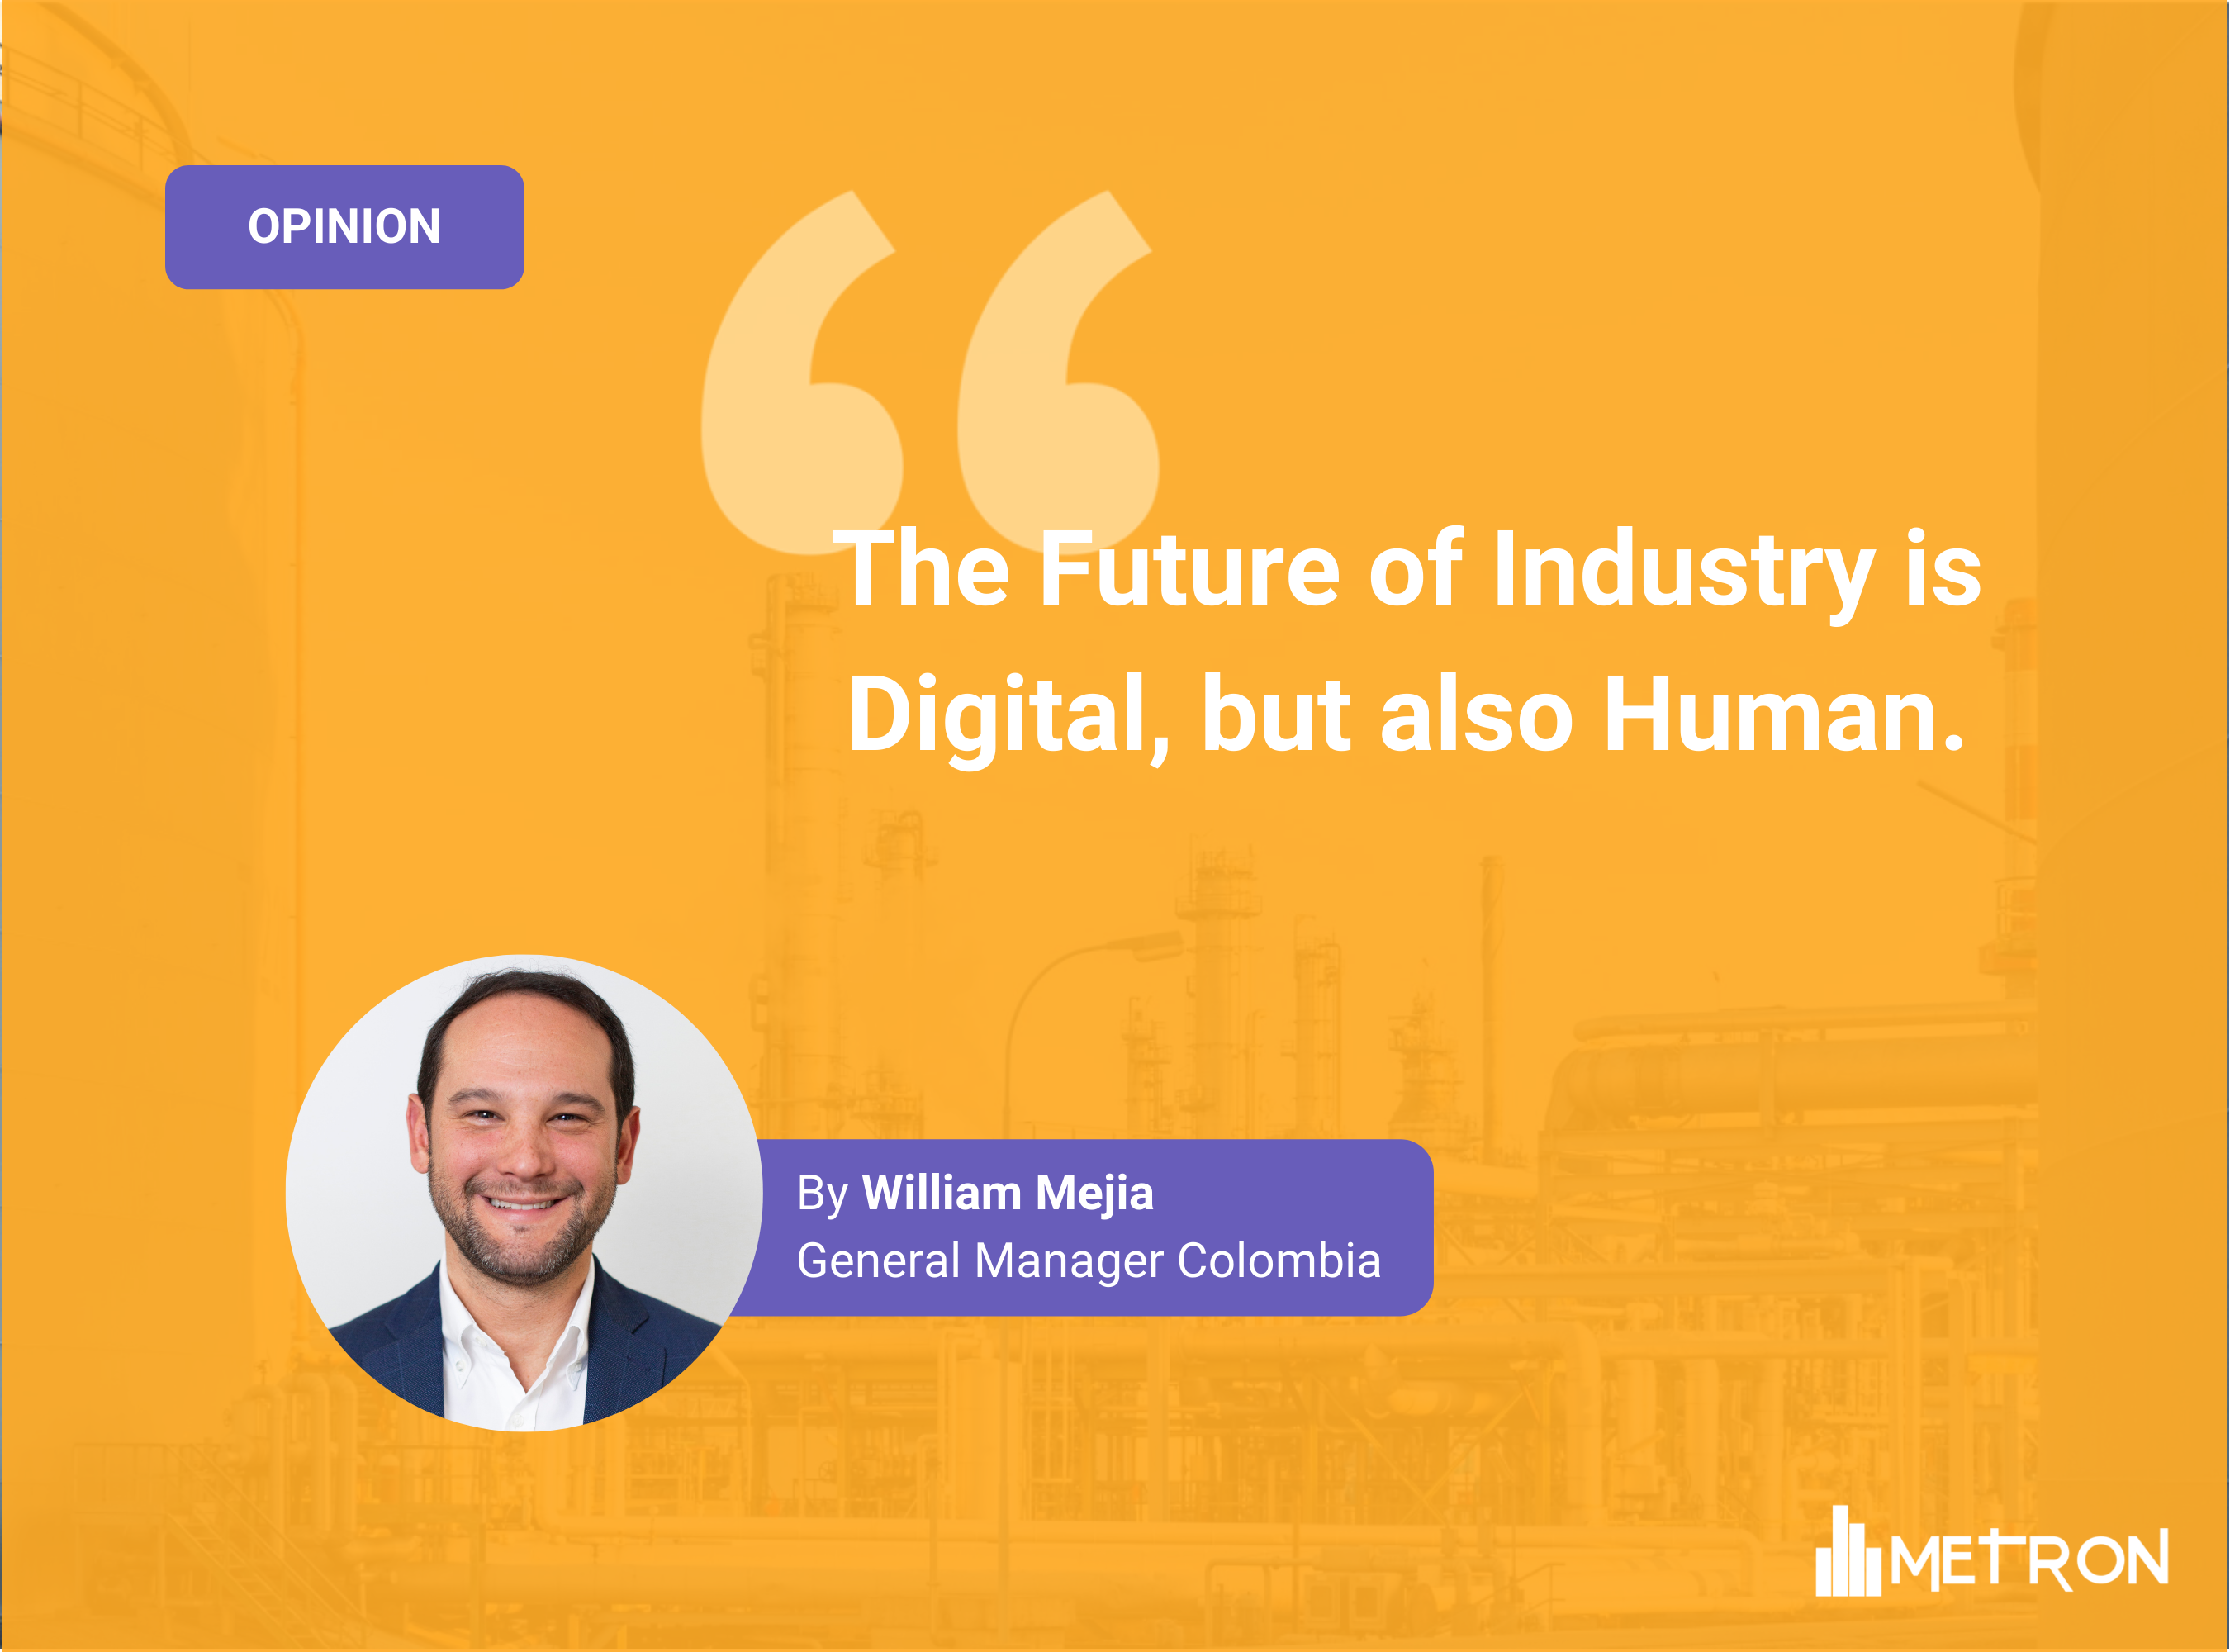 [Opinion] The Future of Industry is Digital, but also Human